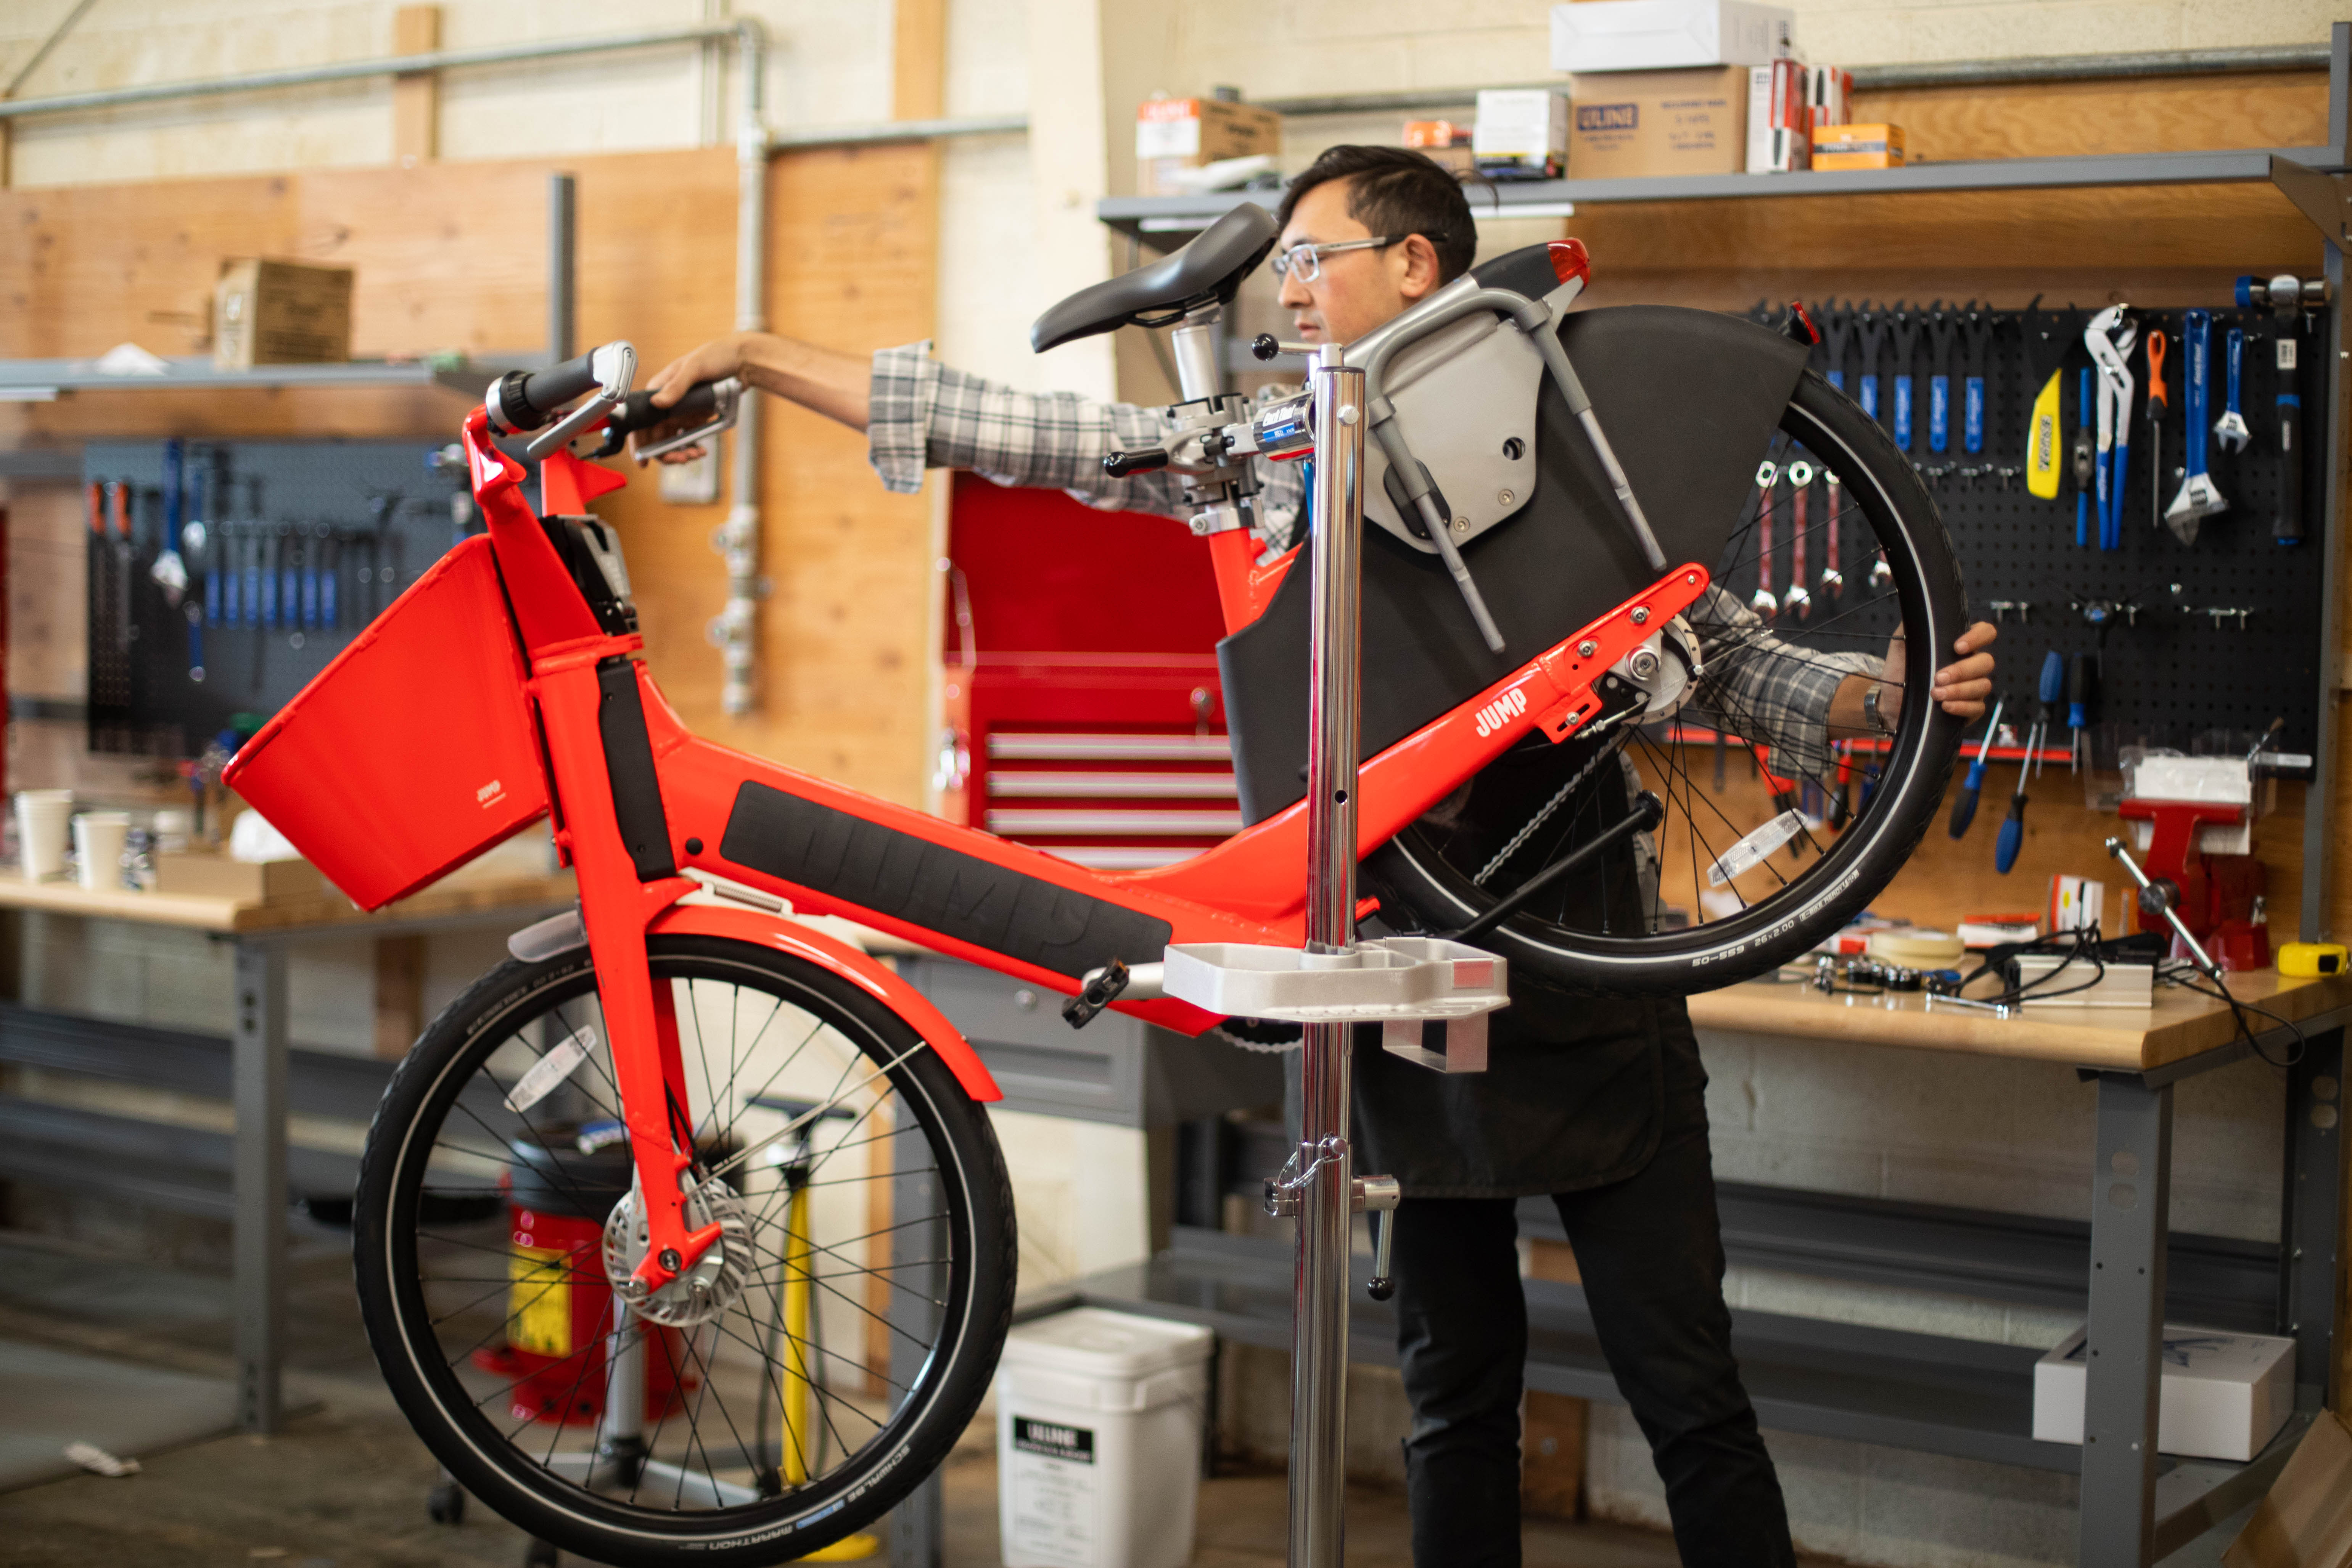 Jump bikes are launching in Seattle on Monday